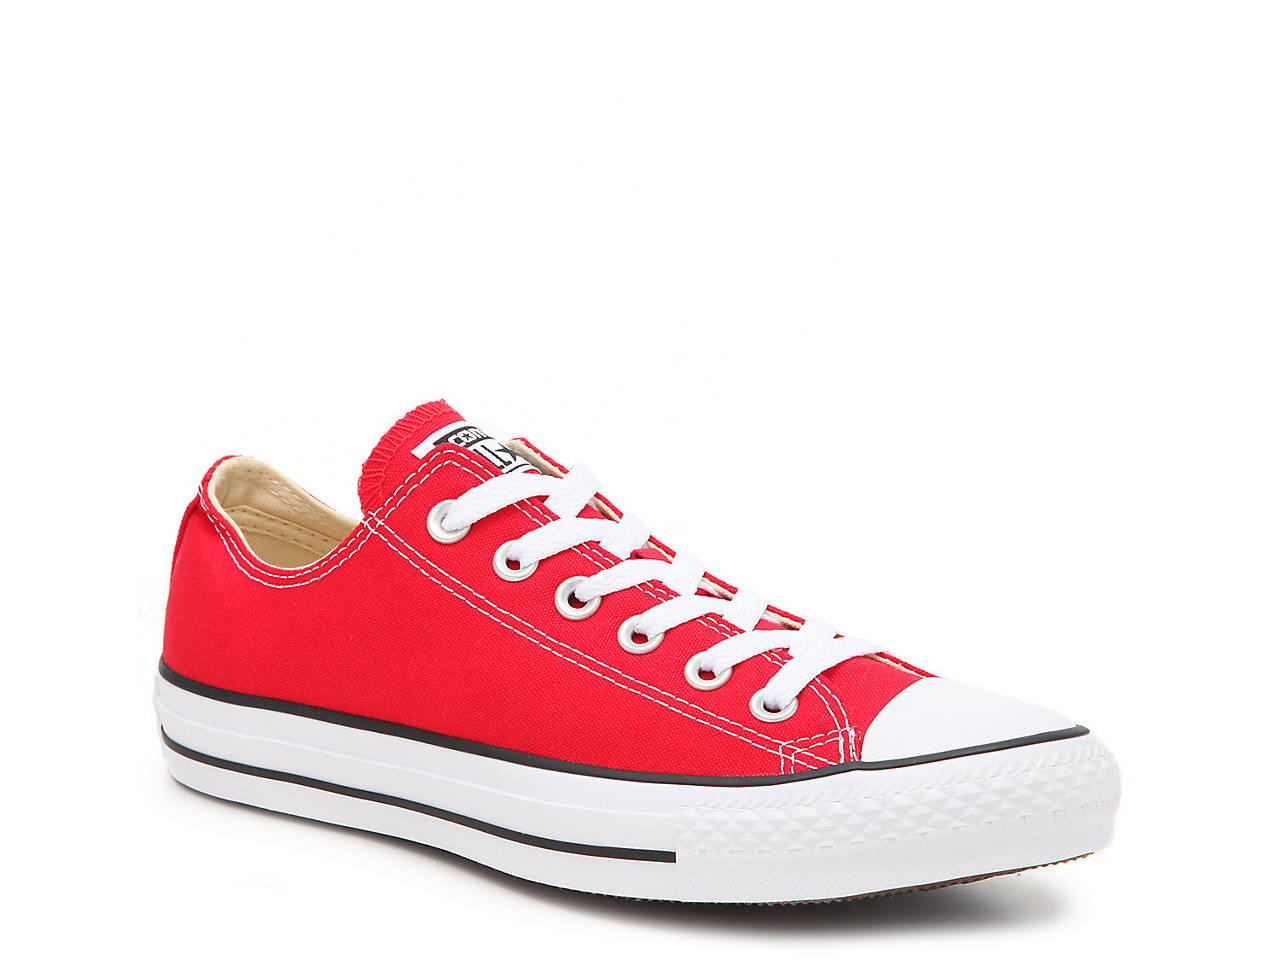 Converse Chuck Taylor All Star Sneaker - Women s Women s Shoes  23b17ef5d